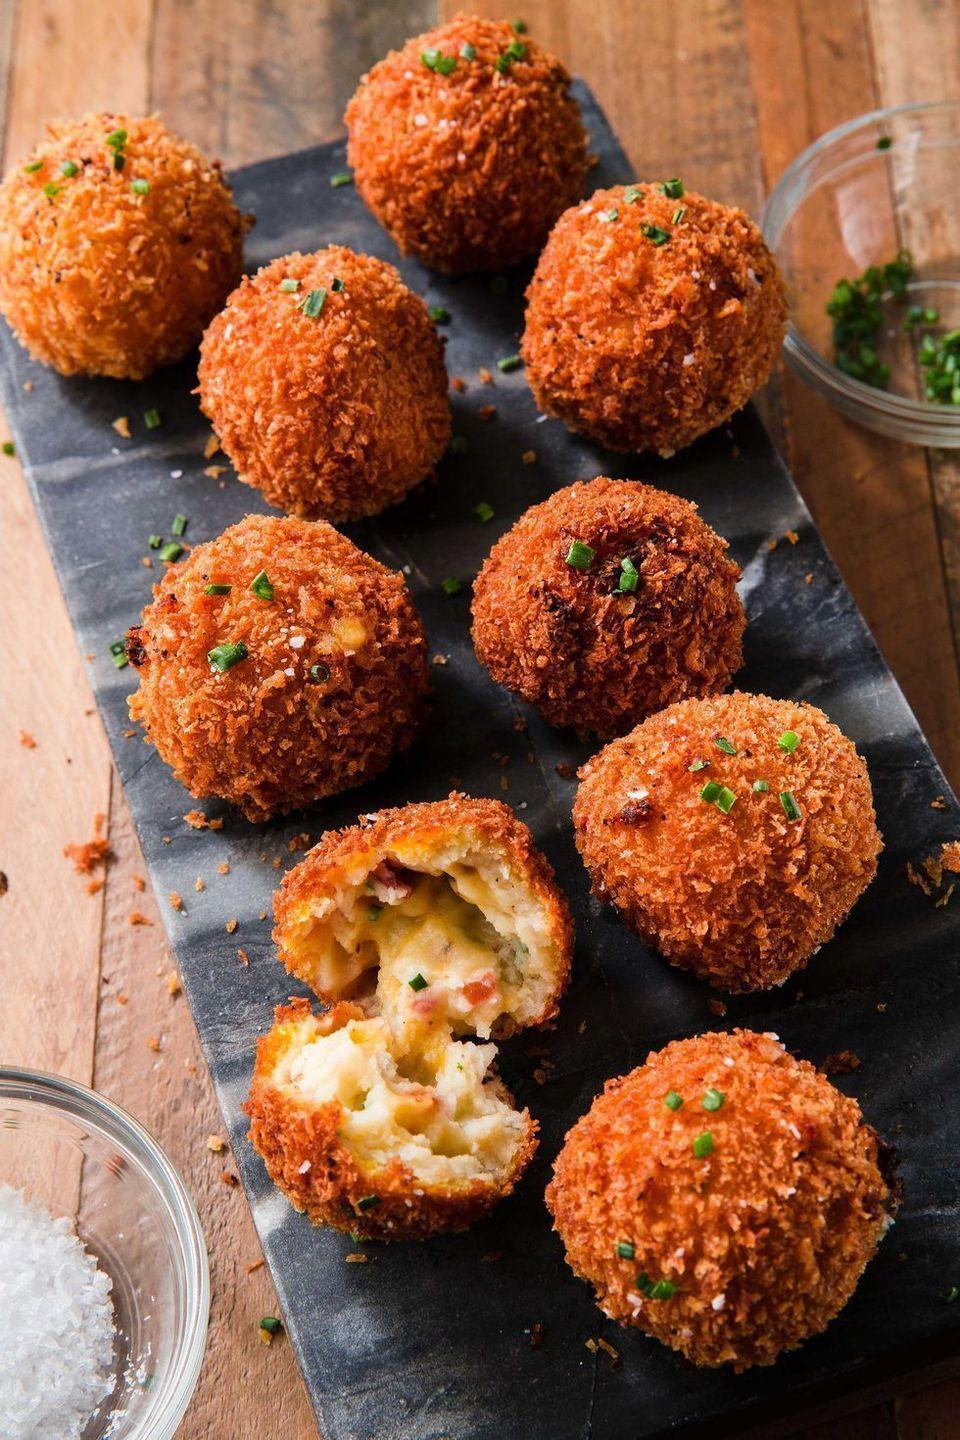 """<p>This easy recipe turns those sad leftover mashed potatoes into something MAGICAL. </p><p>Get the <a href=""""https://www.delish.com/uk/cooking/recipes/a29245081/fried-mashed-potato-balls-recipe/"""" rel=""""nofollow noopener"""" target=""""_blank"""" data-ylk=""""slk:Fried Mashed Potato Balls"""" class=""""link rapid-noclick-resp"""">Fried Mashed Potato Balls</a> recipe.</p>"""